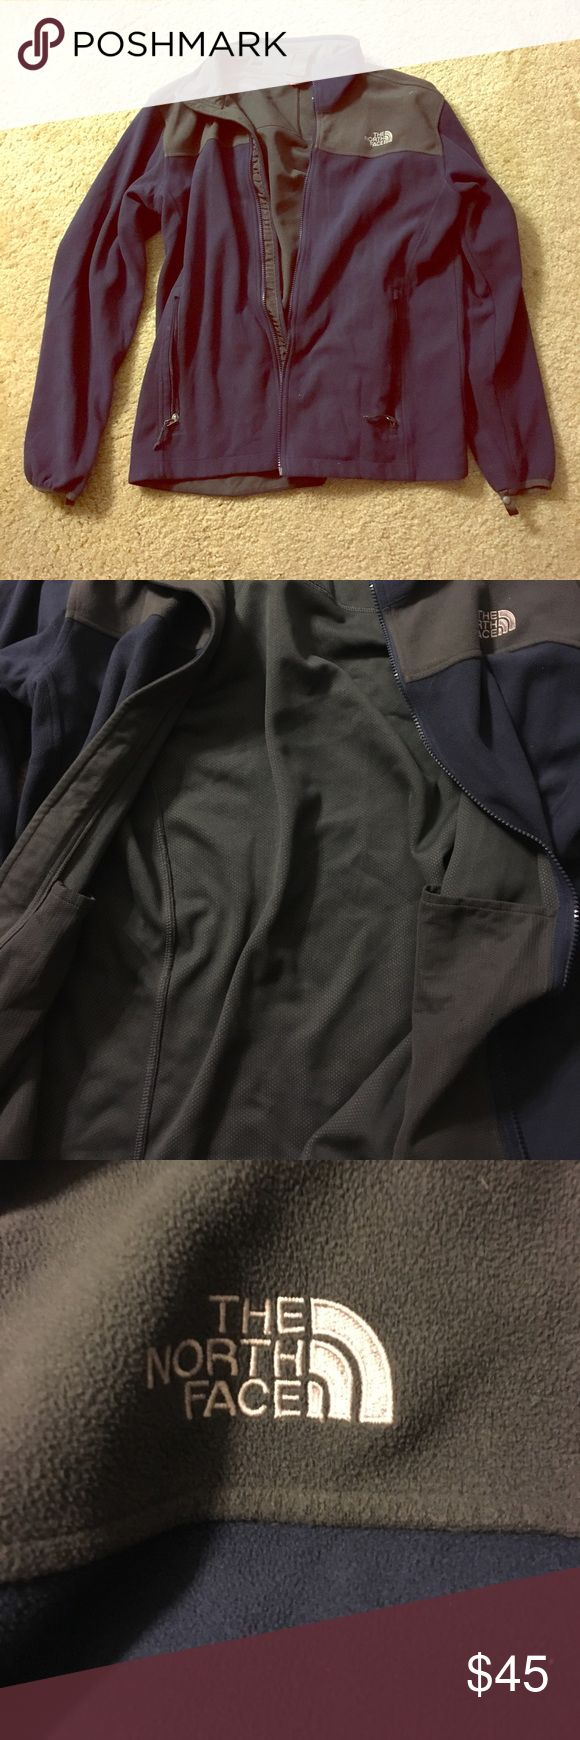 The North Face men's jacket Awesome men's North Face! In good pre-owned condition with very minor wear. The North Face Jackets & Coats Performance Jackets